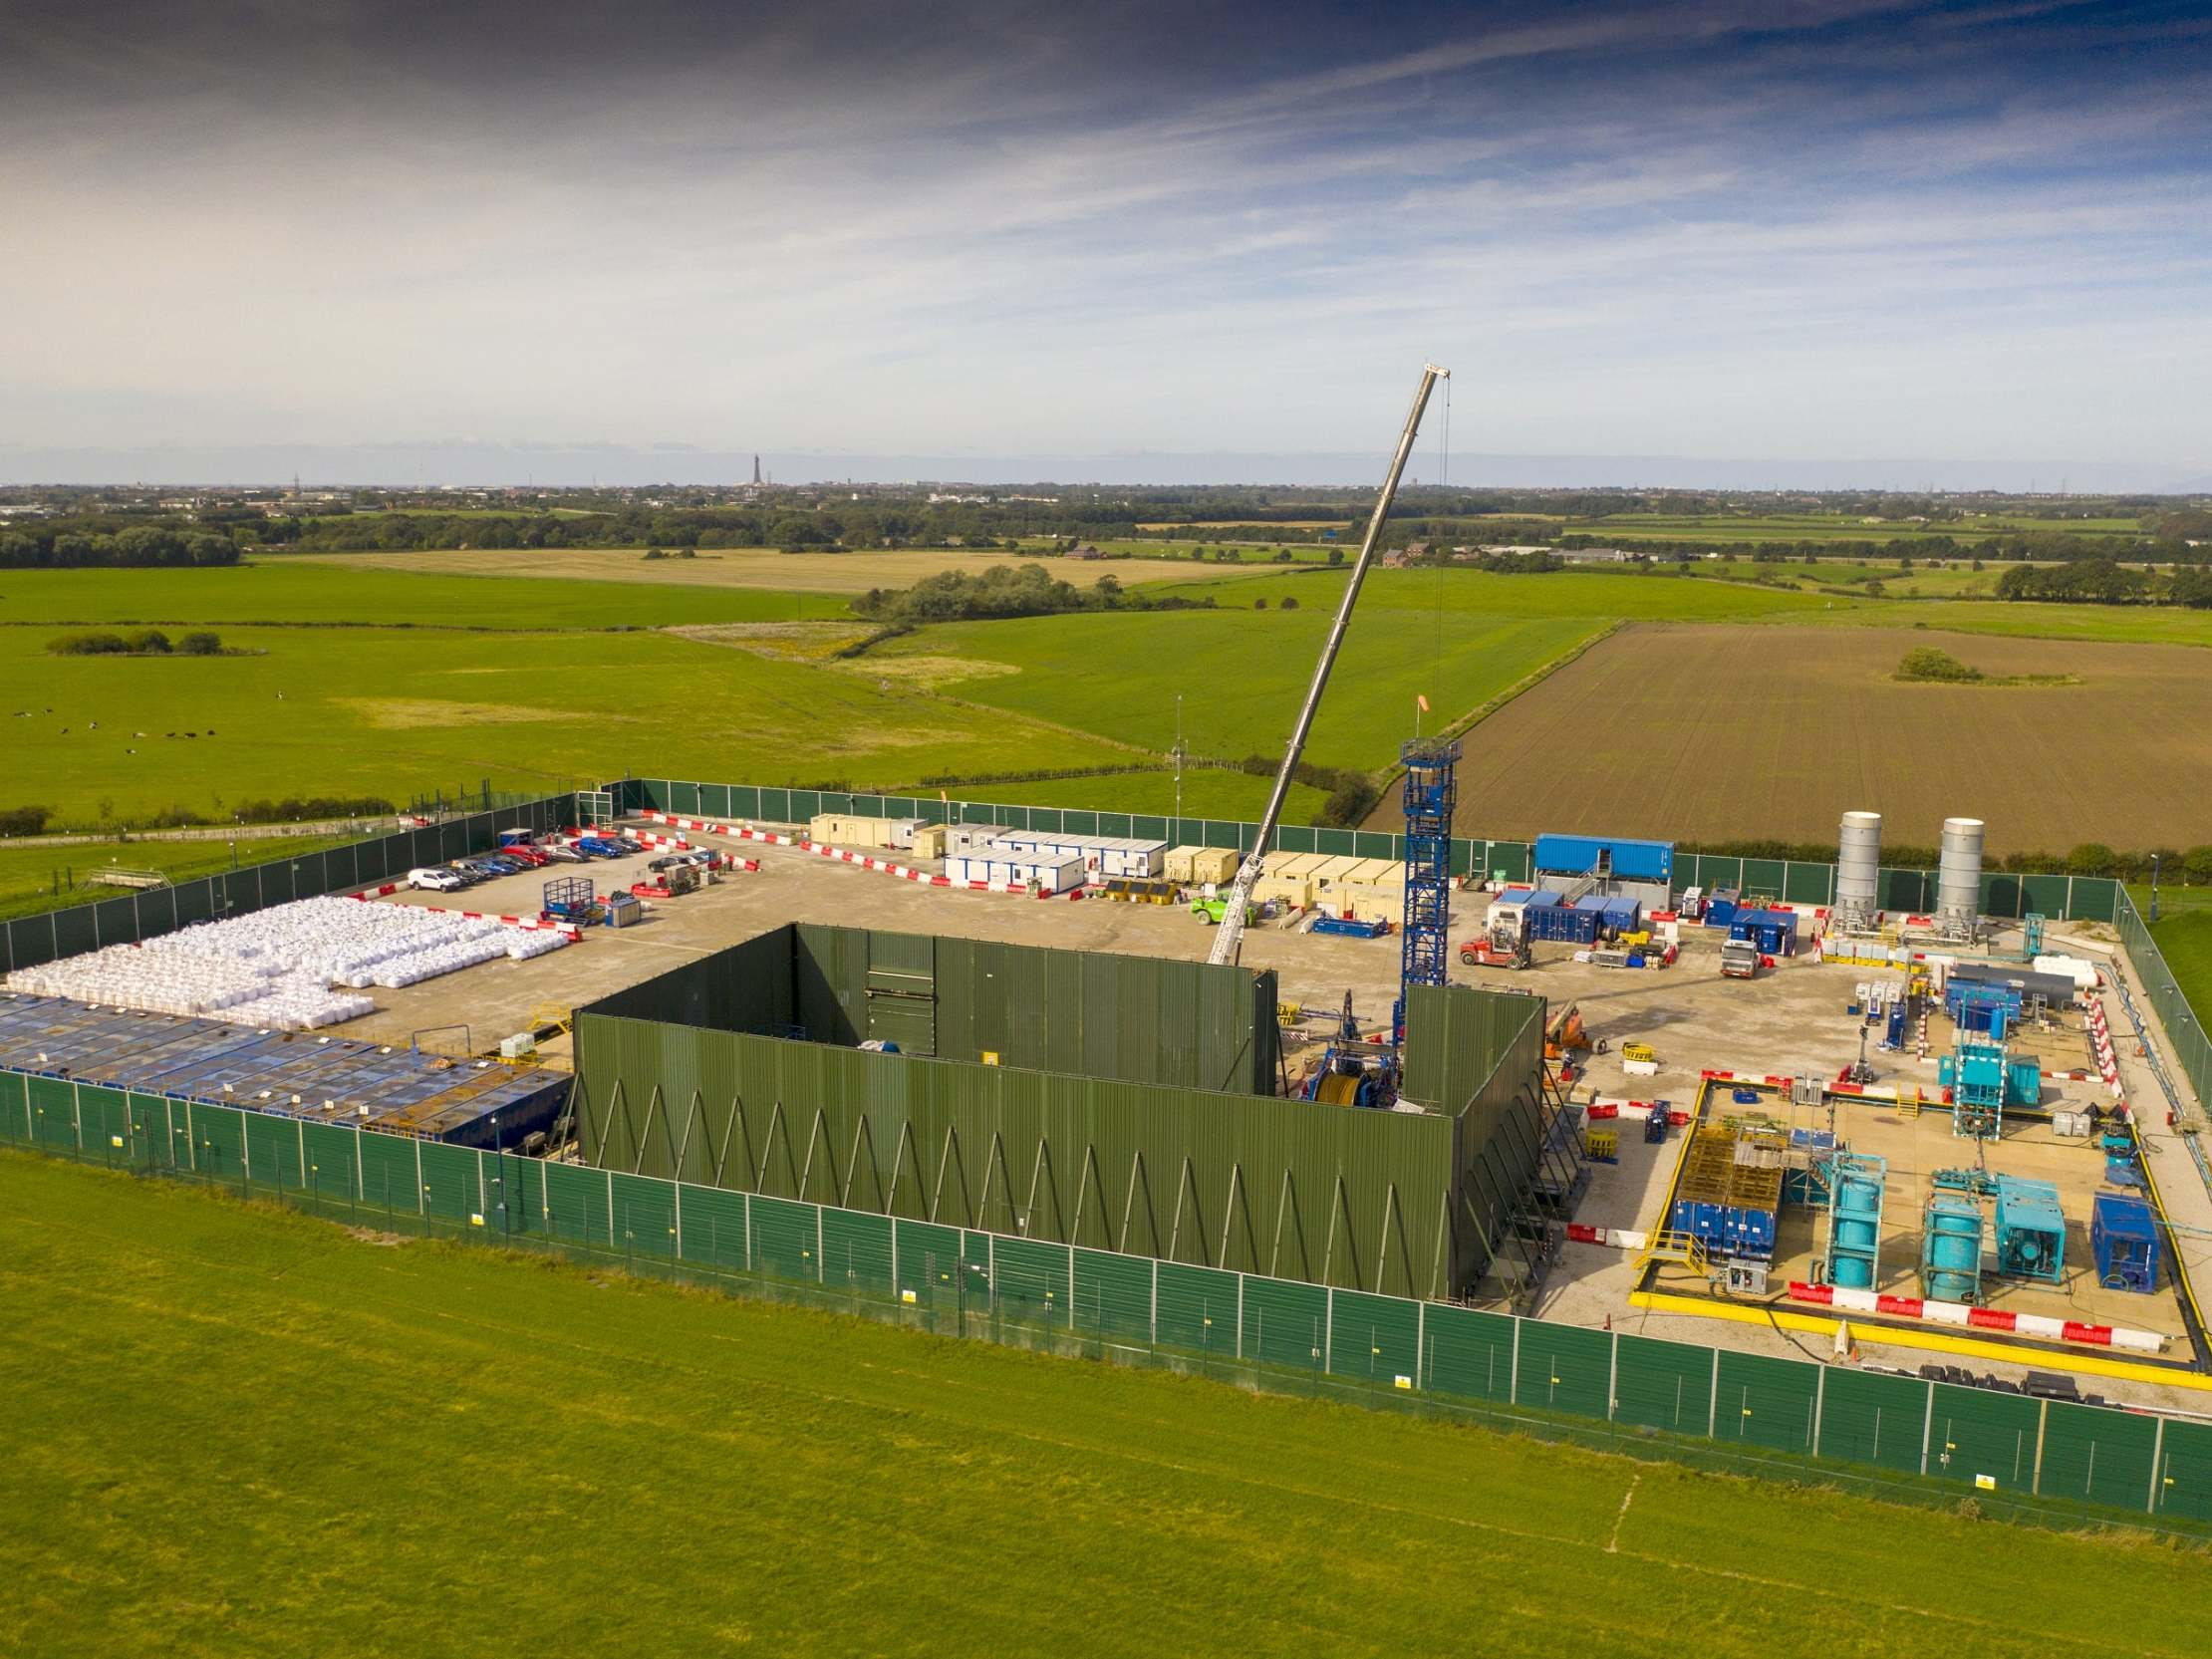 Fracking equipment removed from Cuadrilla site after operations suspended: 'Work at this site could soon be at an end'